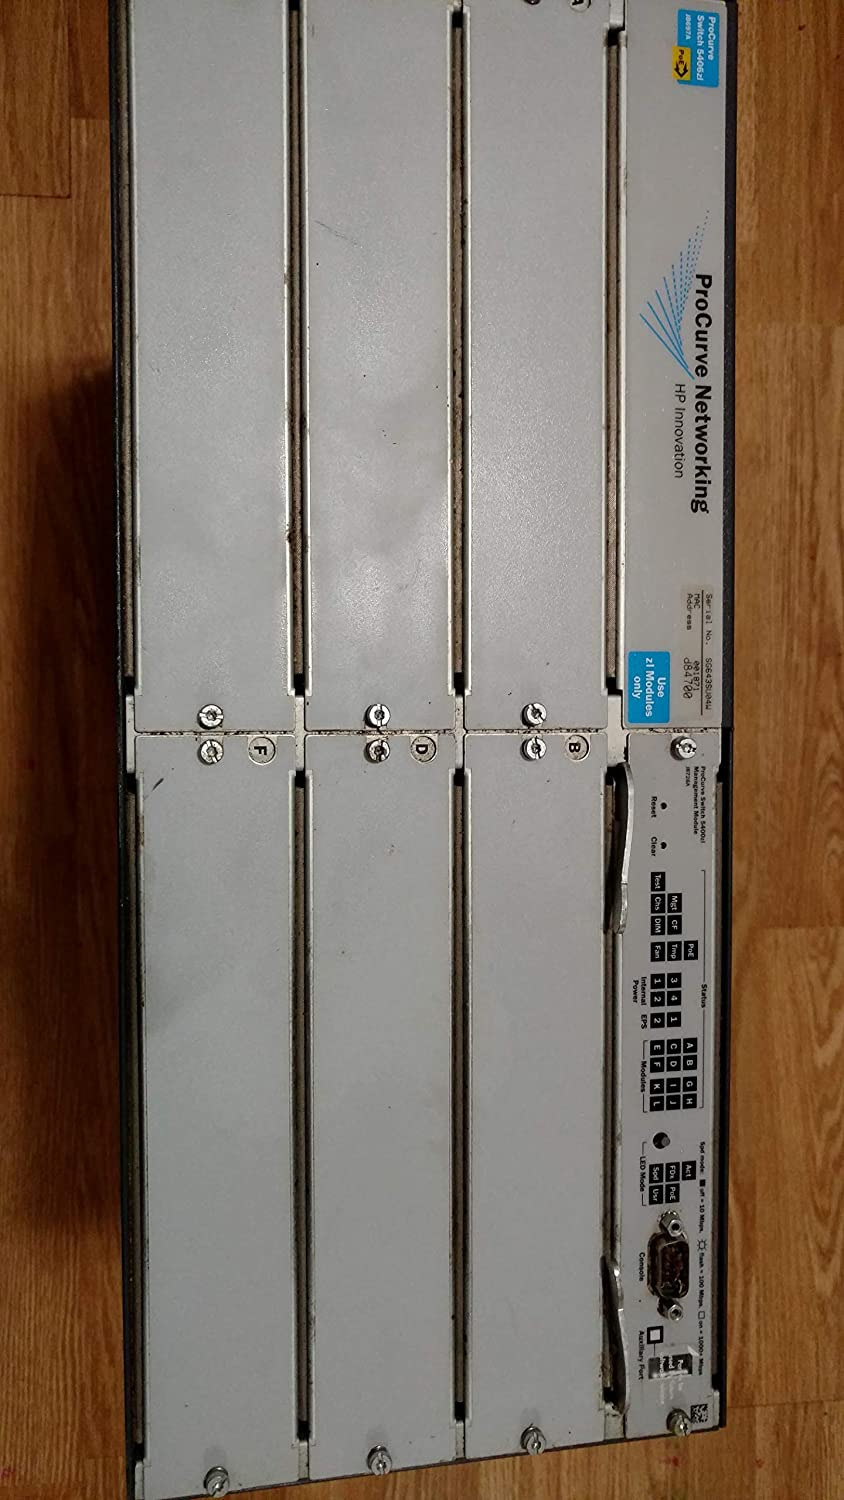 Hp J8697A Procurve 5406zl Managed Ethernet Switch X Expansion Slot